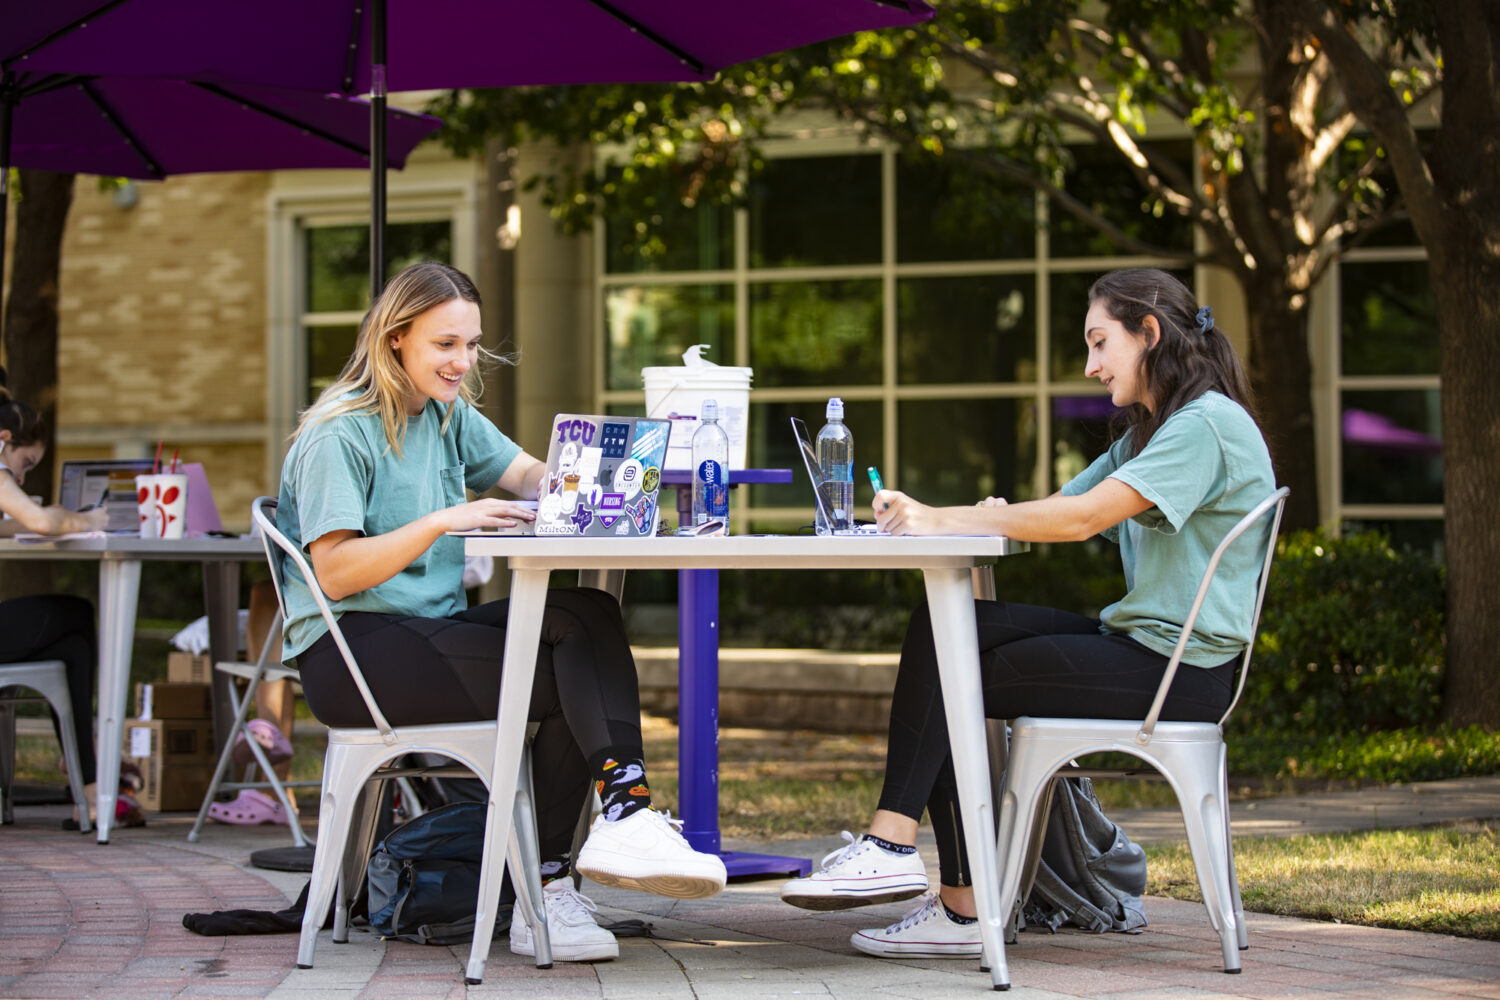 Without a break, TCU students feel more overwhelmed